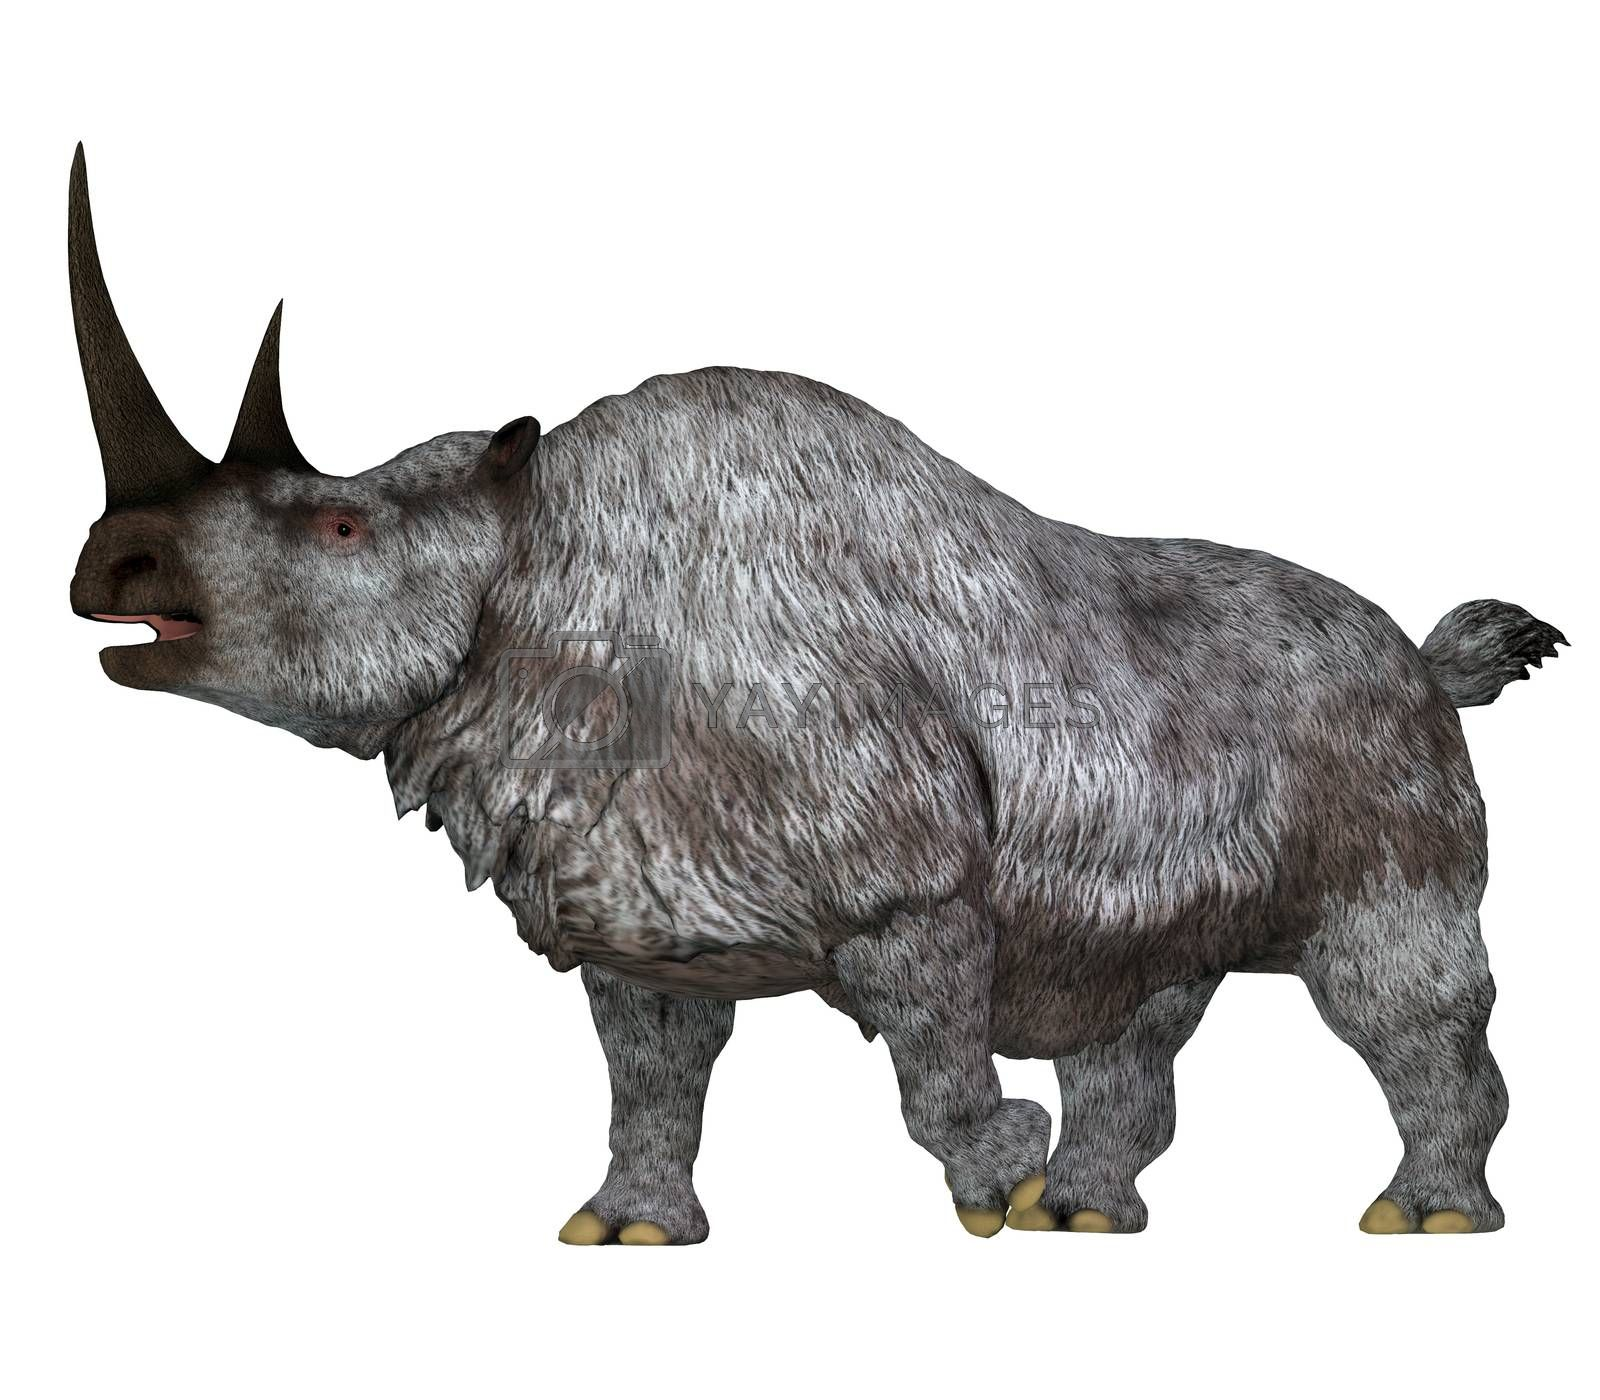 The Woolly Rhino was a herbivorous rhinoceros that lived in Asia and Europe during the Pleistocene Period.